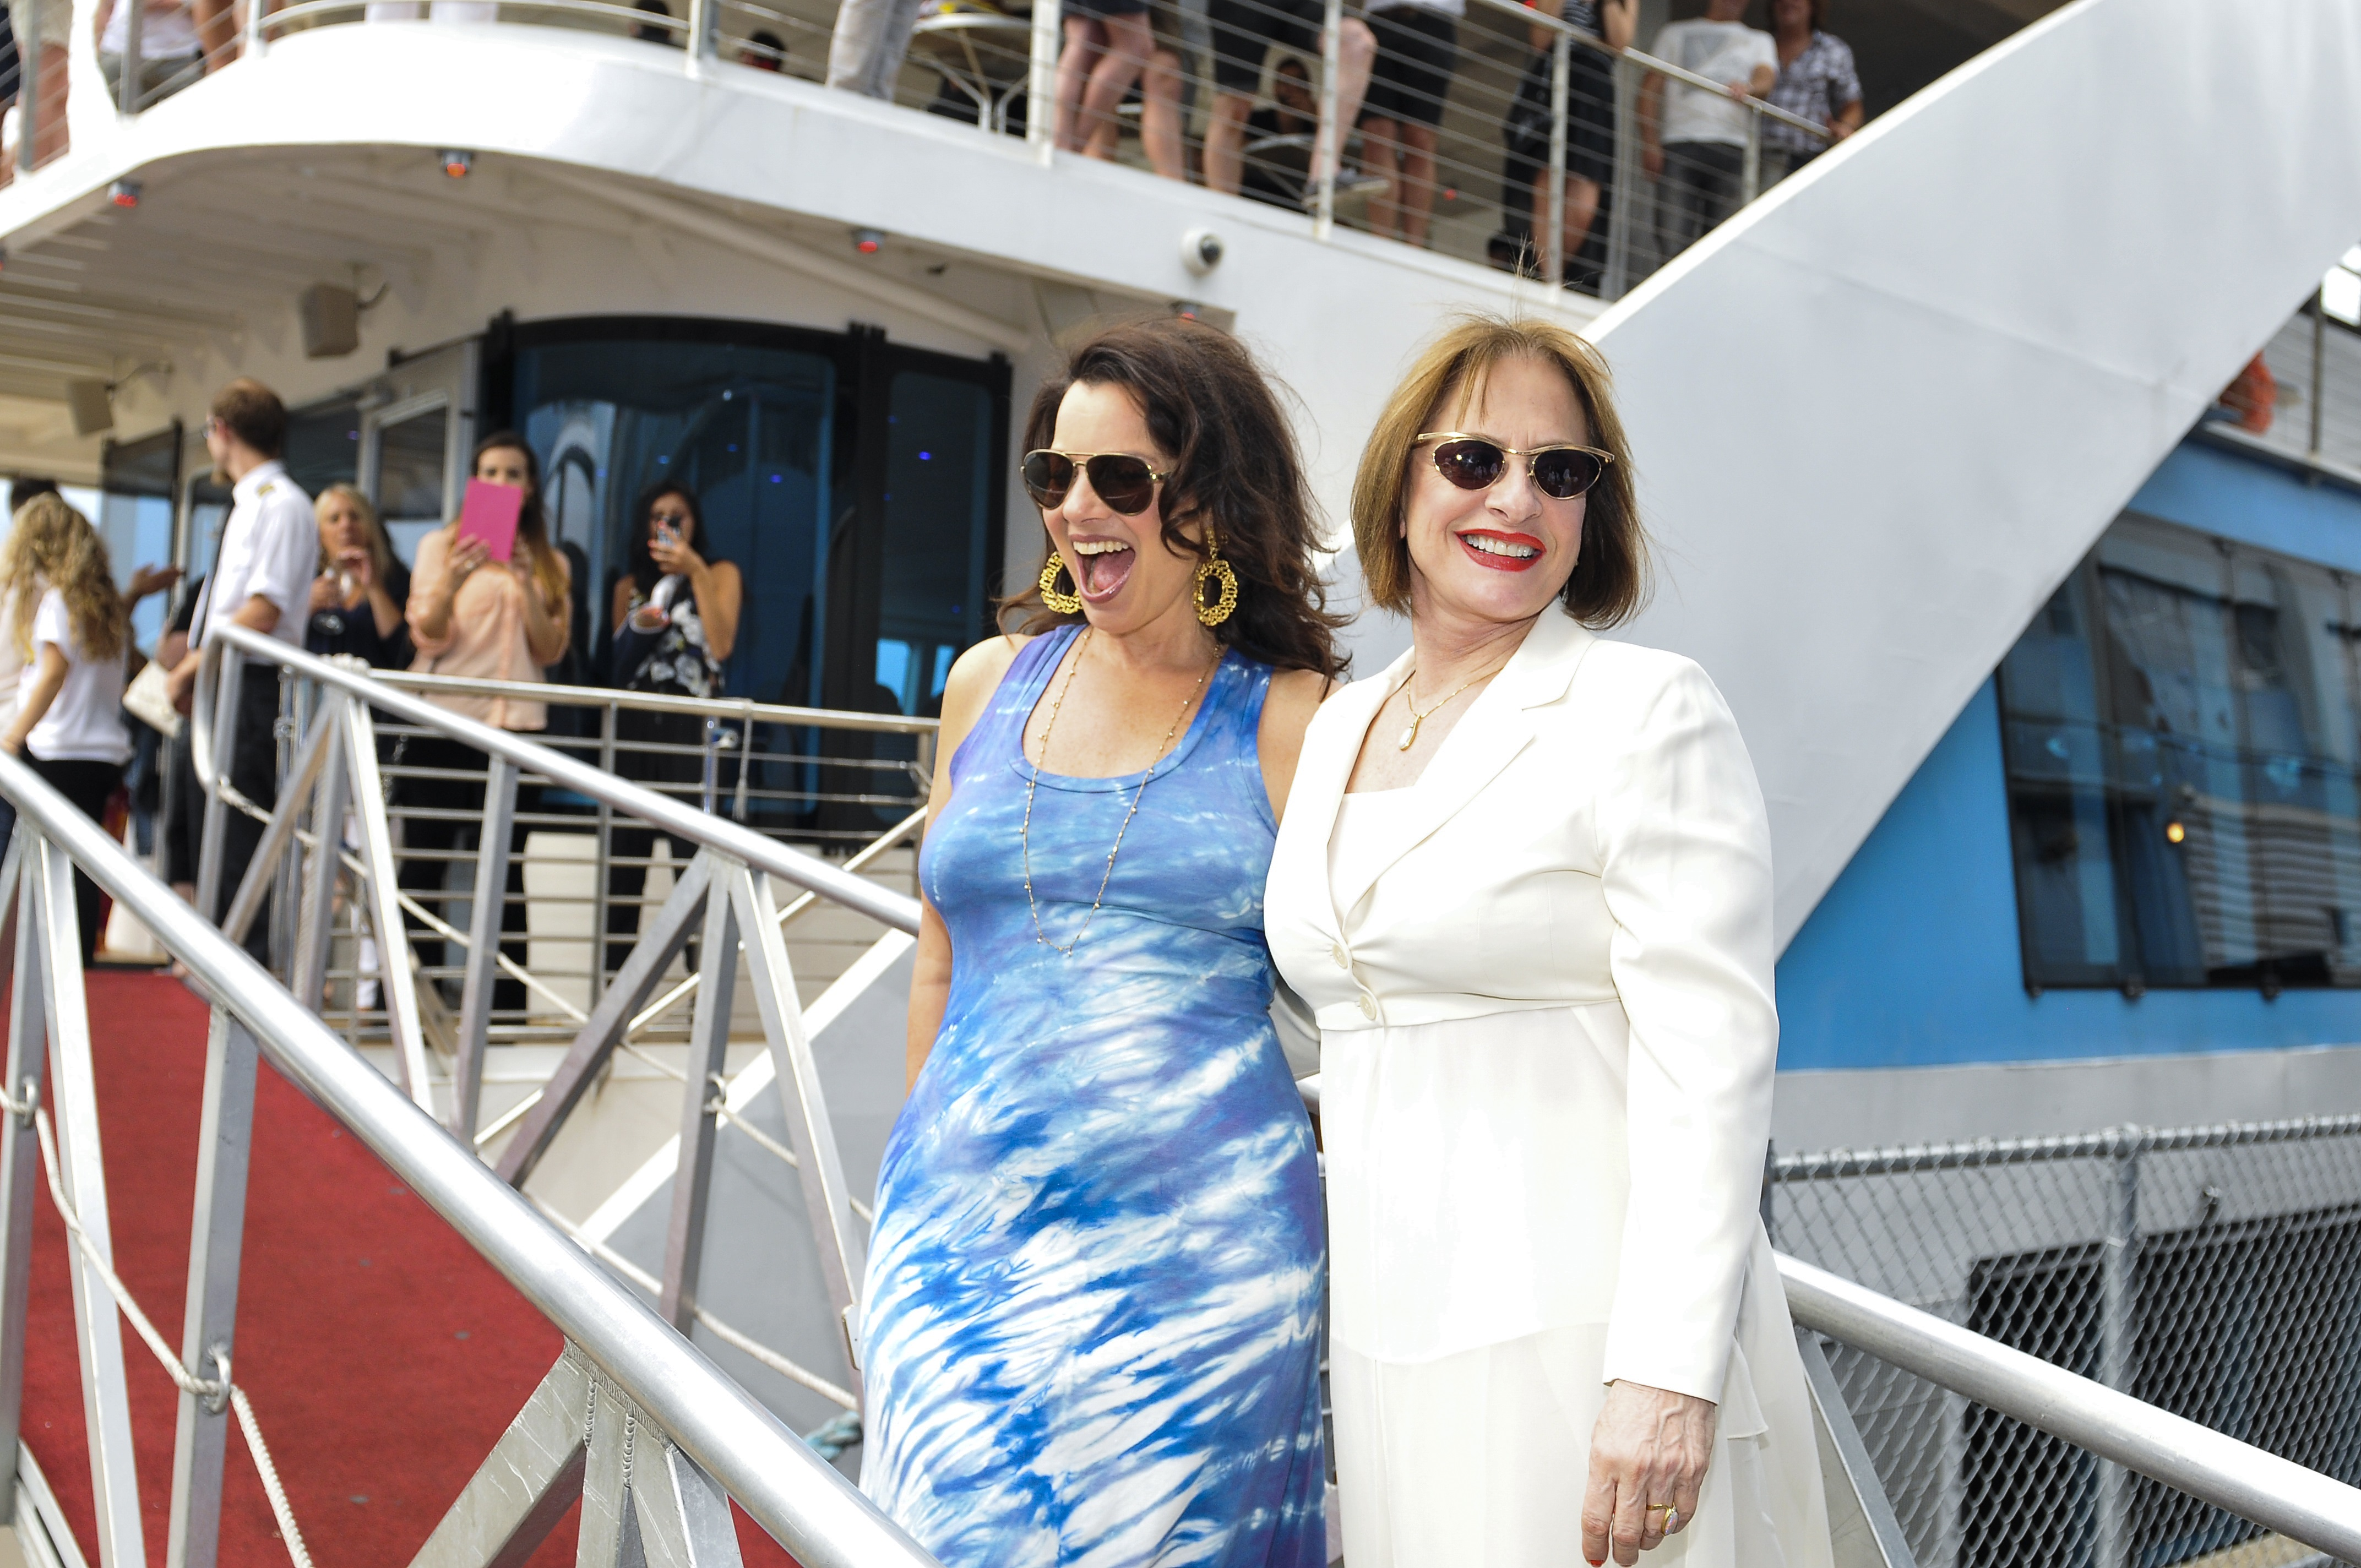 Fran Drescher (L) and Patti LuPone (R) at last year's cruise.